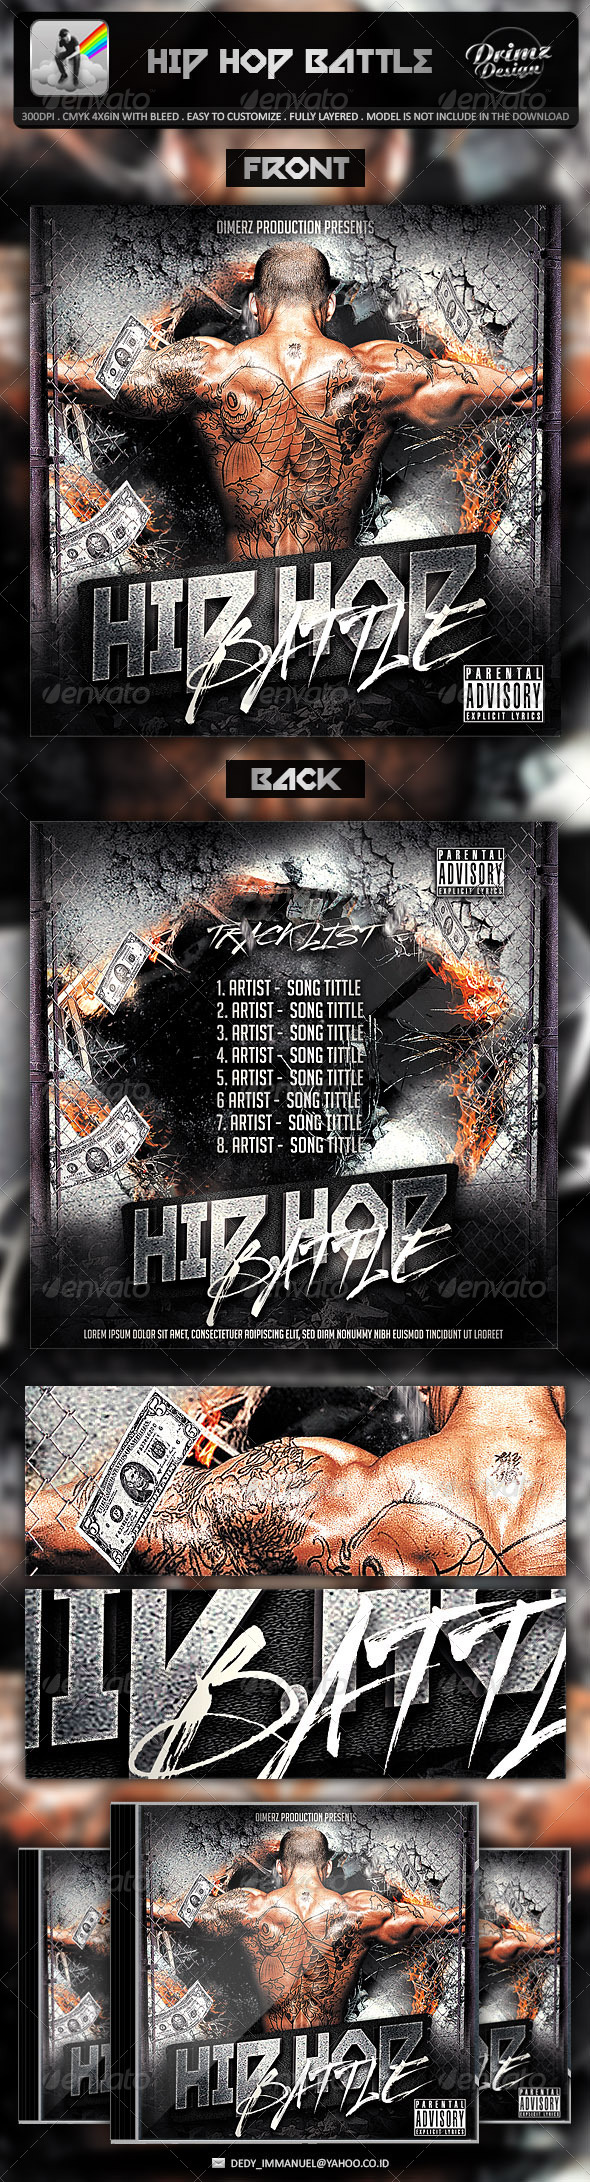 GraphicRiver Hip Hop Battle Mixtape Template 7062060